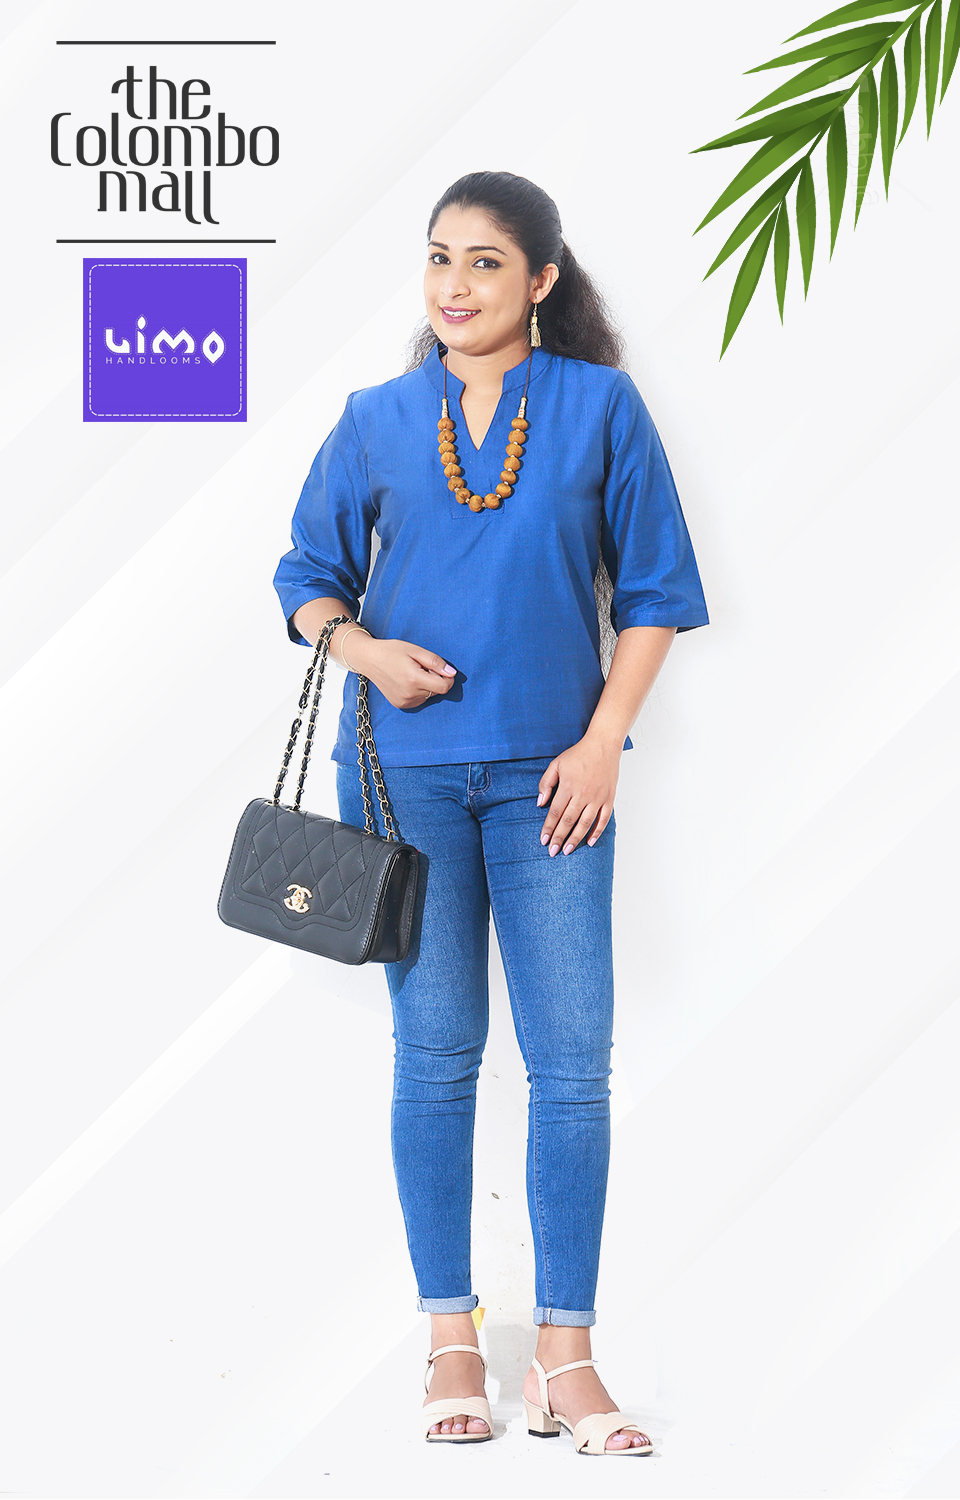 Royal Blue Handloom Top Sri Lanka